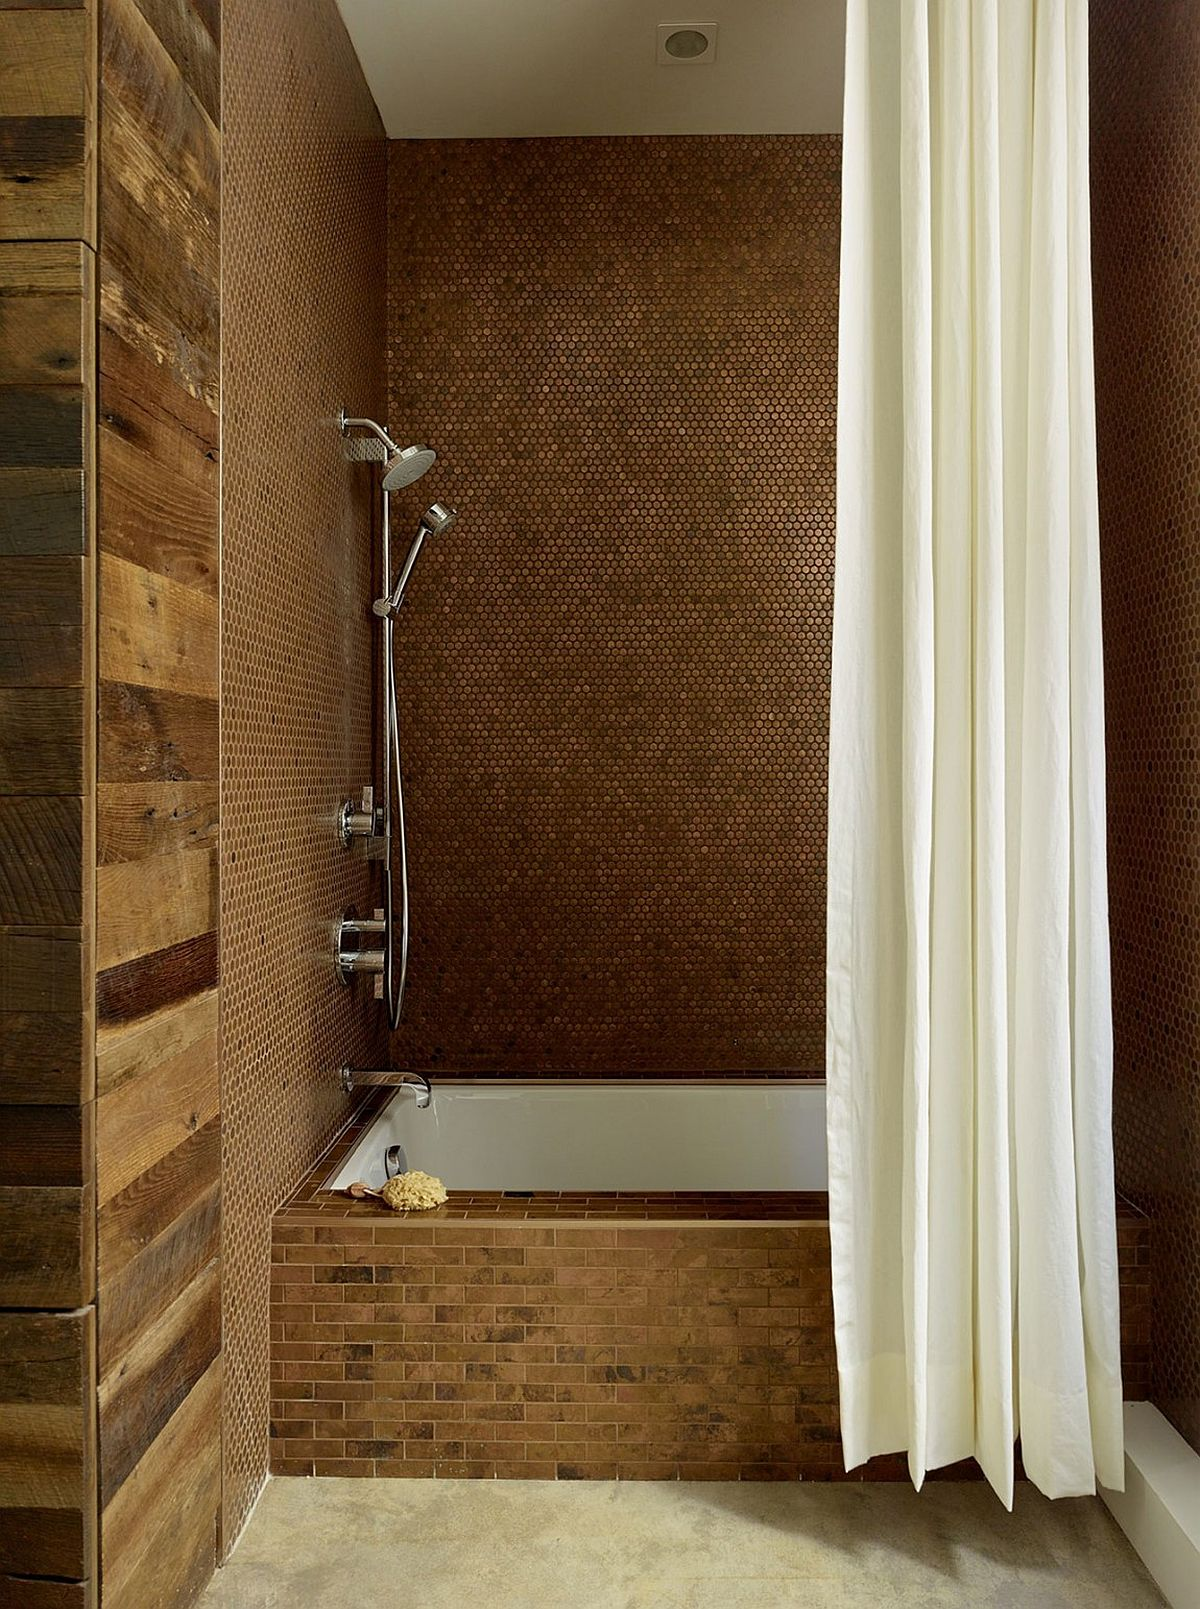 Penny tiles create glittering walls in the shower area